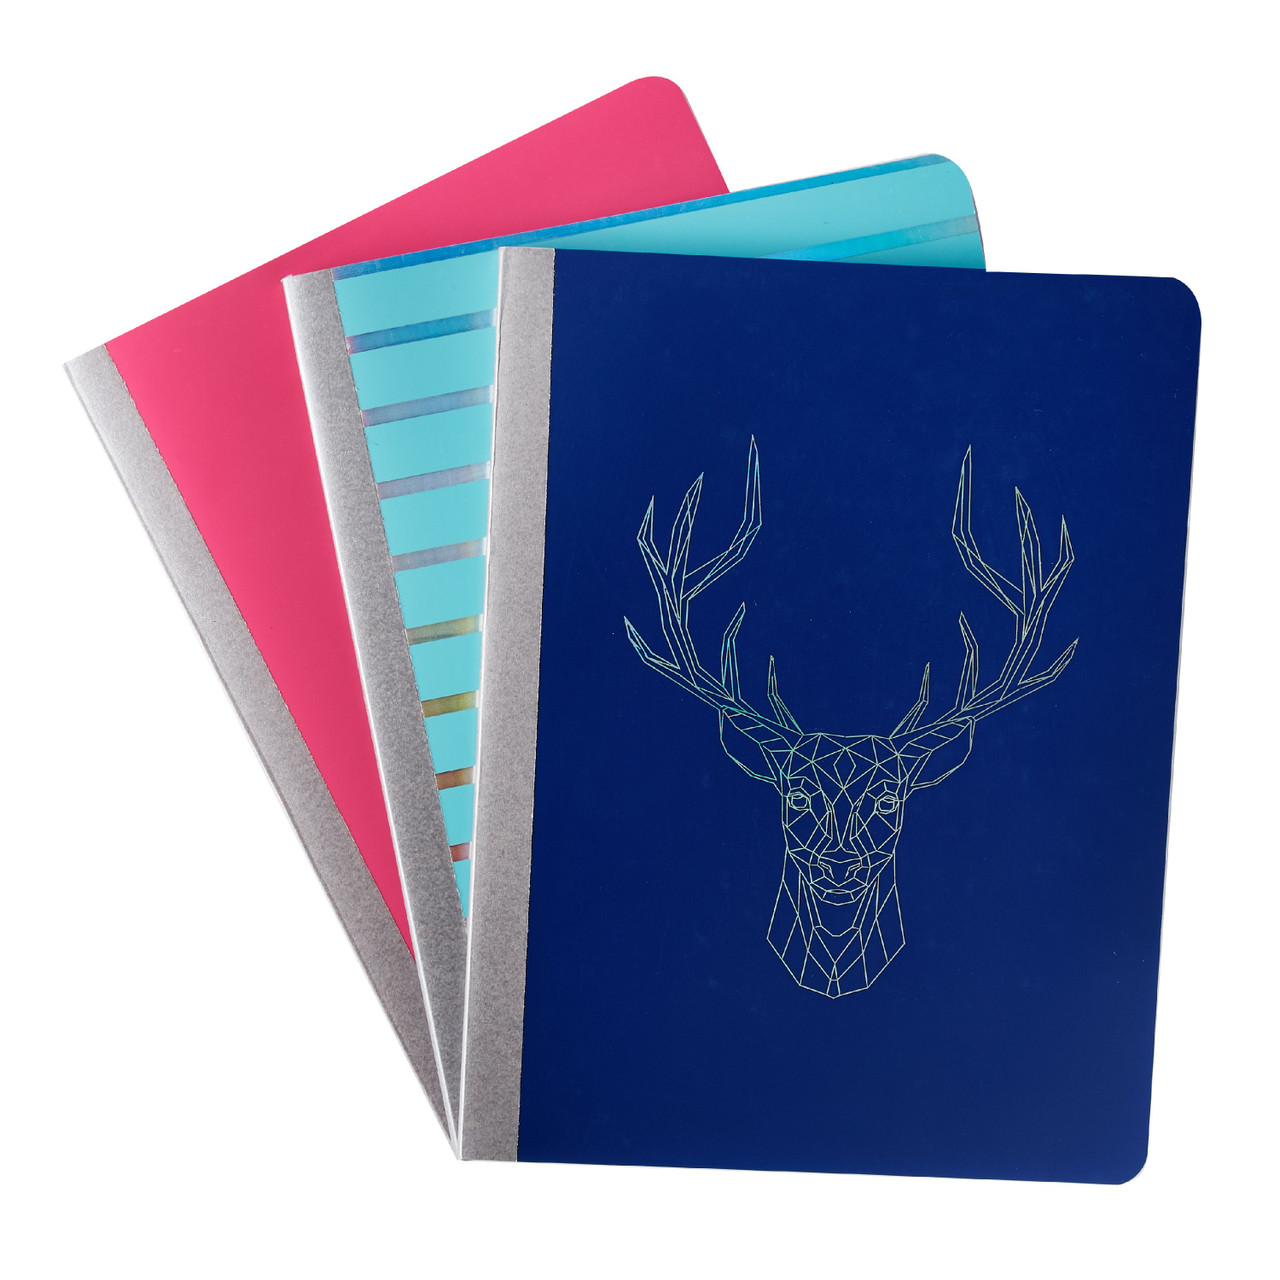 Pen + Gear Poly Composition Book, College Ruled, 80 Pages, Girls Assorted Designs